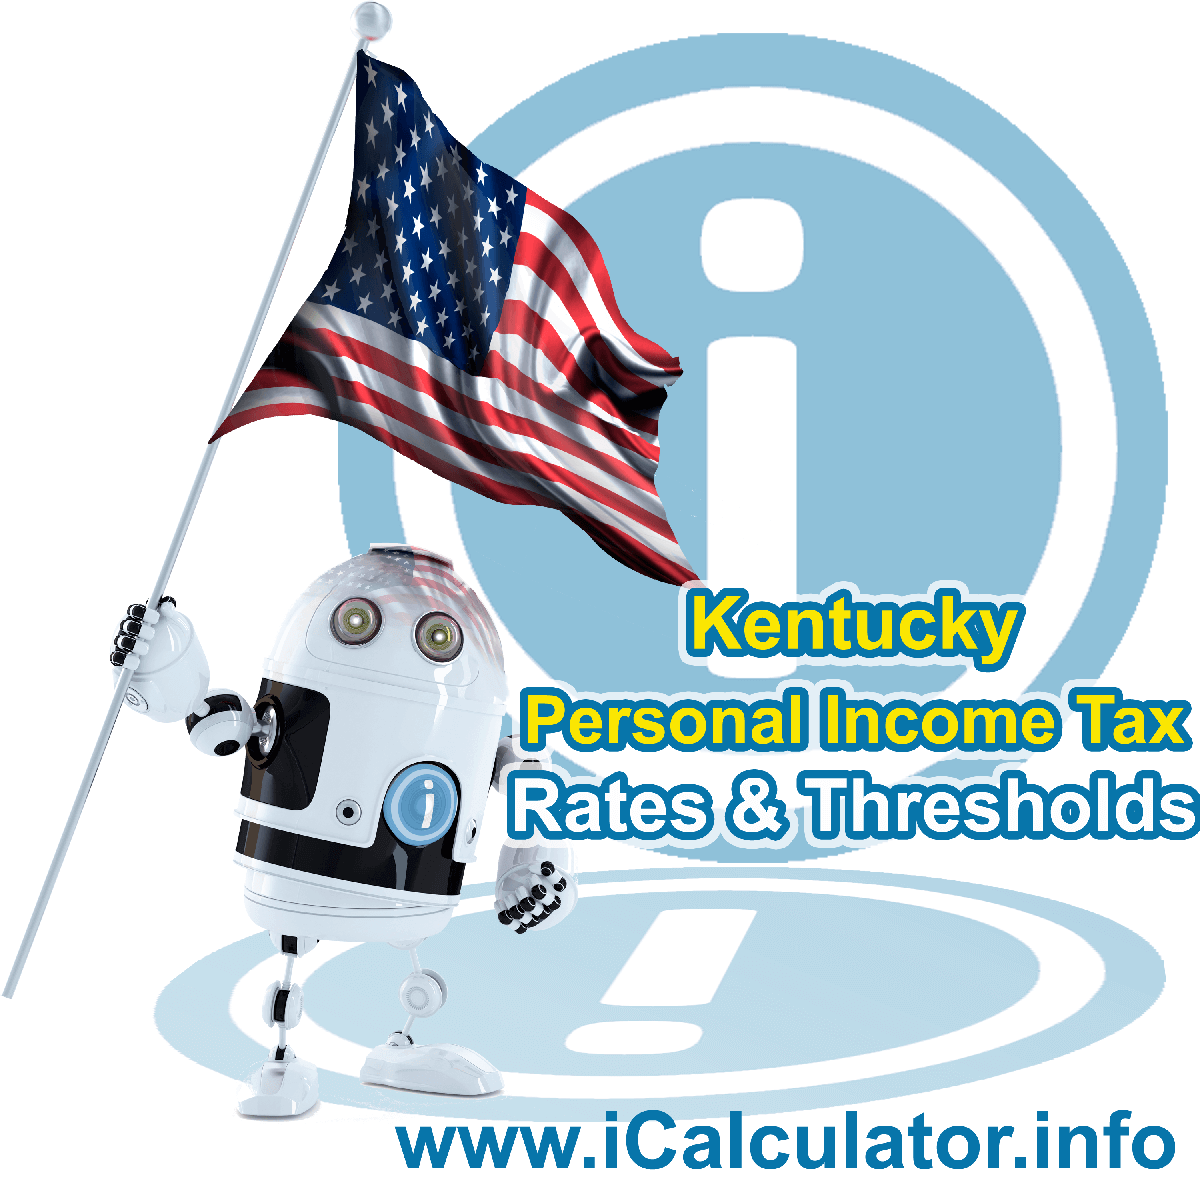 Kentucky State Tax Tables 2014. This image displays details of the Kentucky State Tax Tables for the 2014 tax return year which is provided in support of the 2014 US Tax Calculator